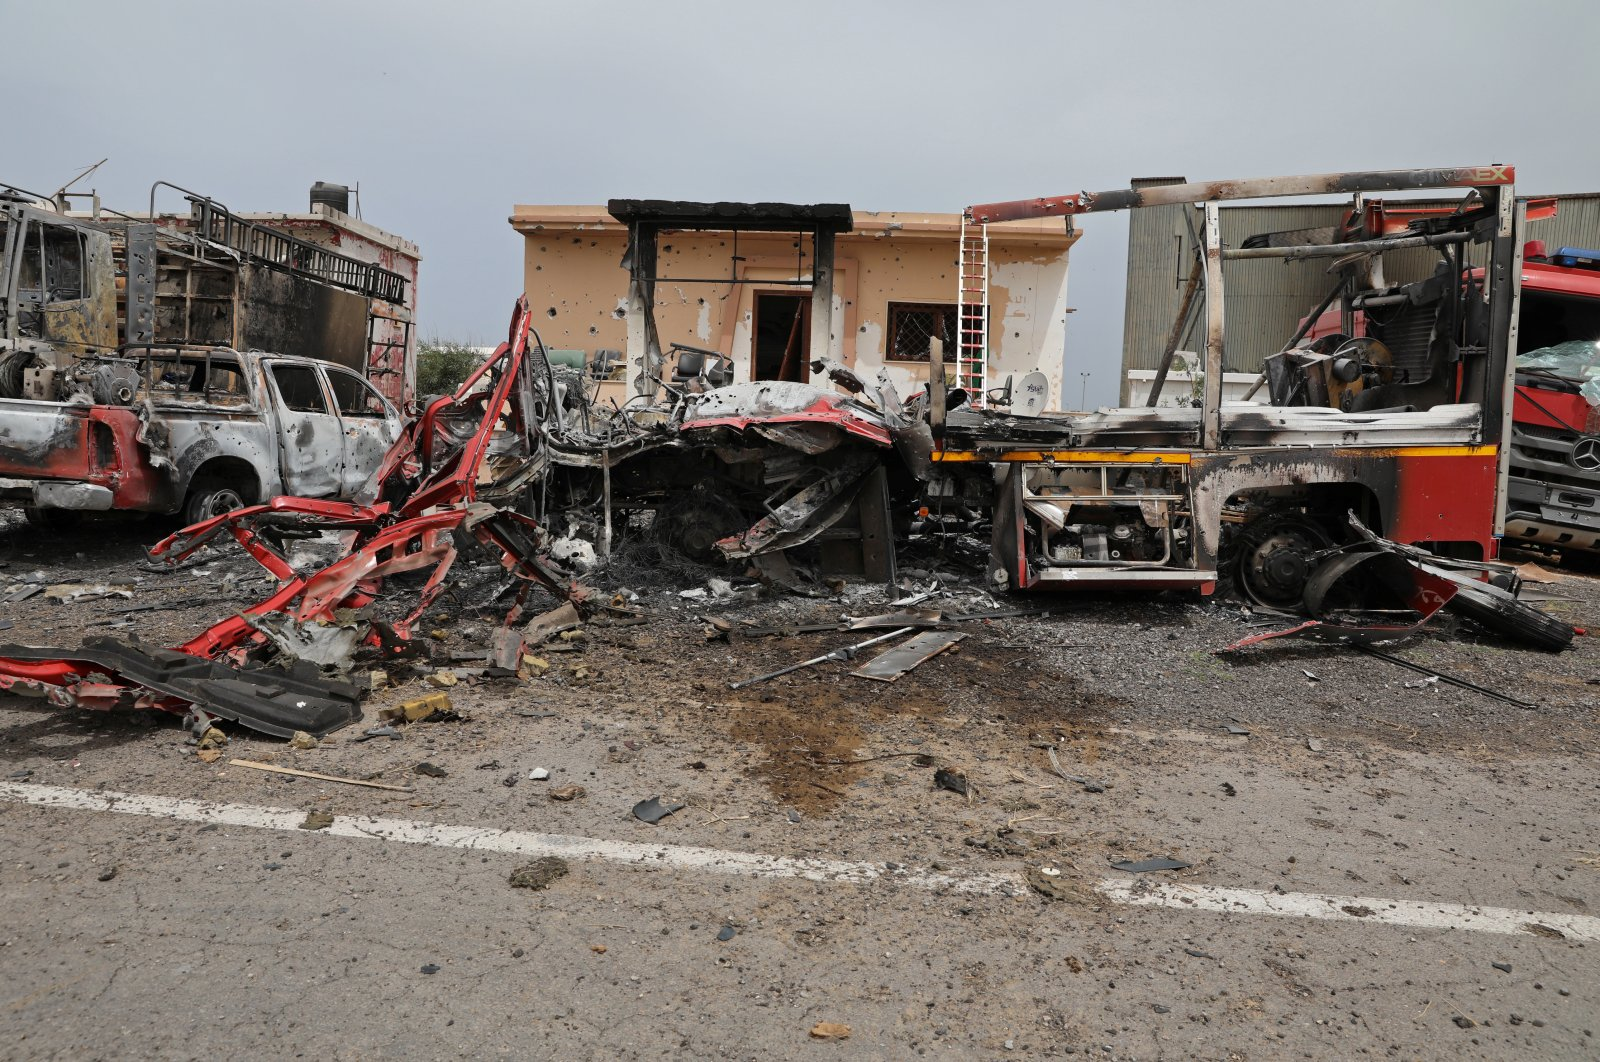 Damaged vehicles are seen at Tripoli's Mitiga airport after it was hit by shelling in Tripoli, Libya May 10, 2020. REUTERS